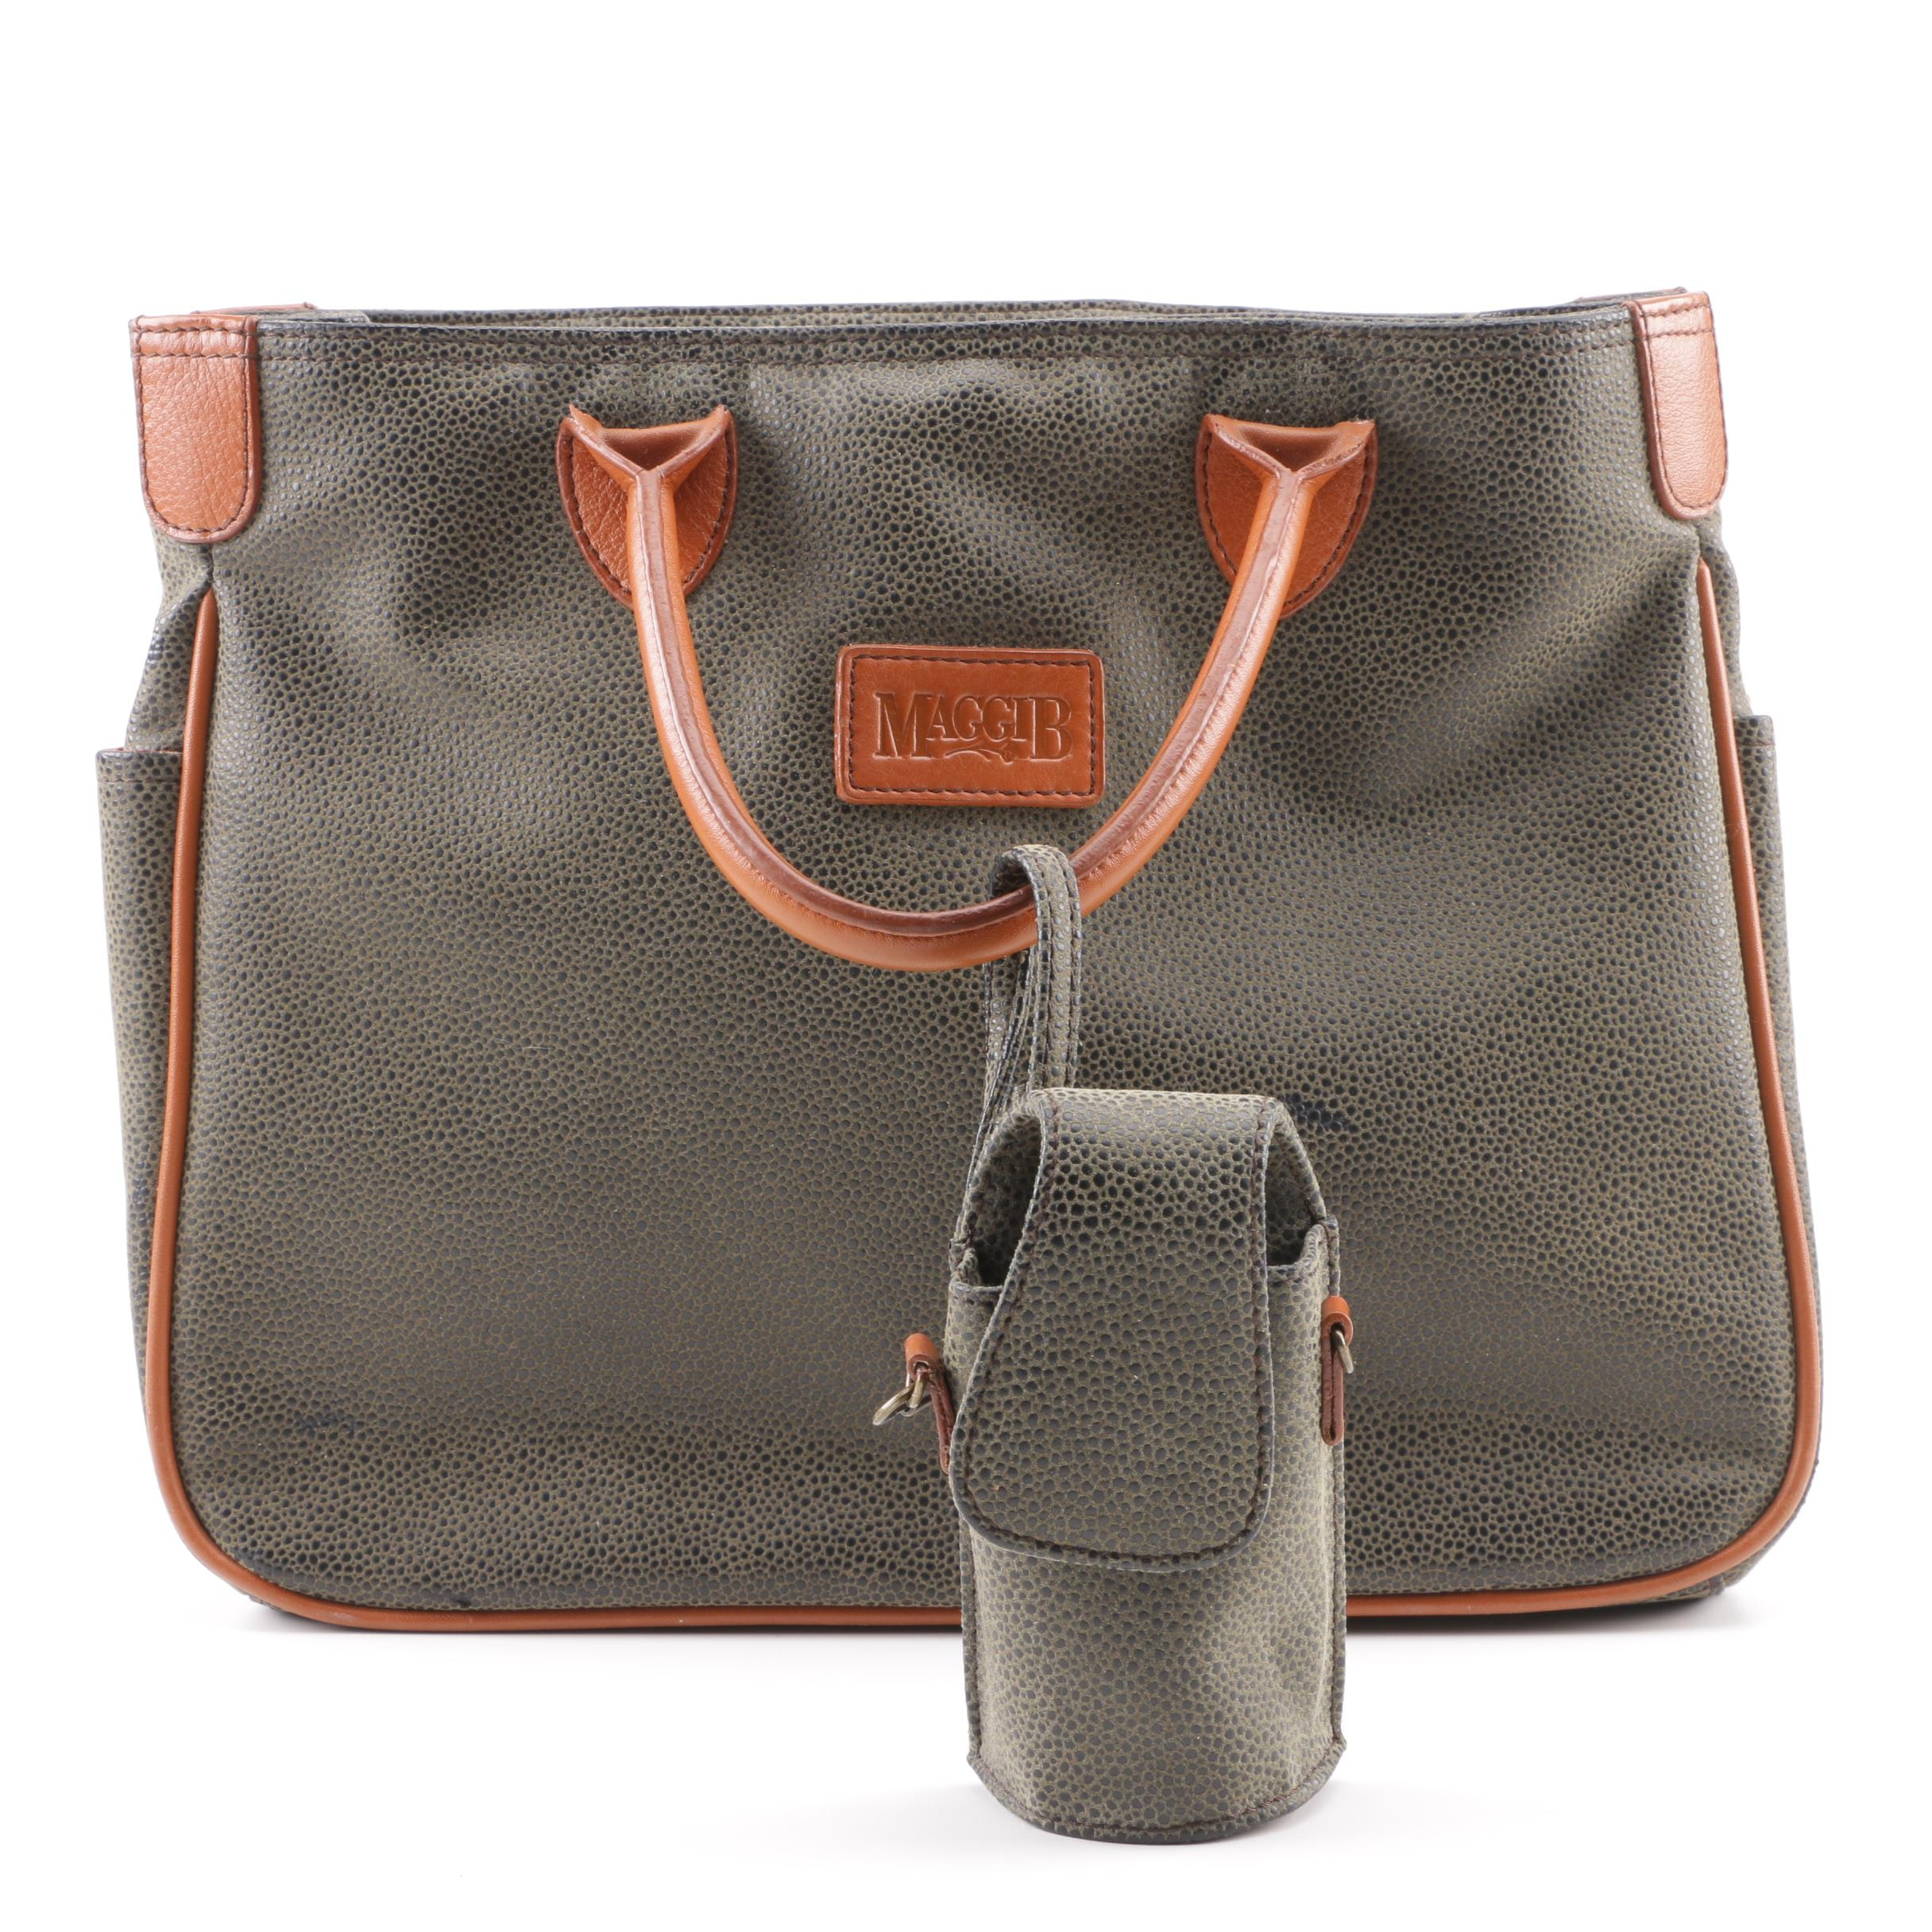 MaggiB Green and Tan Faux Leather Top Handle Bag